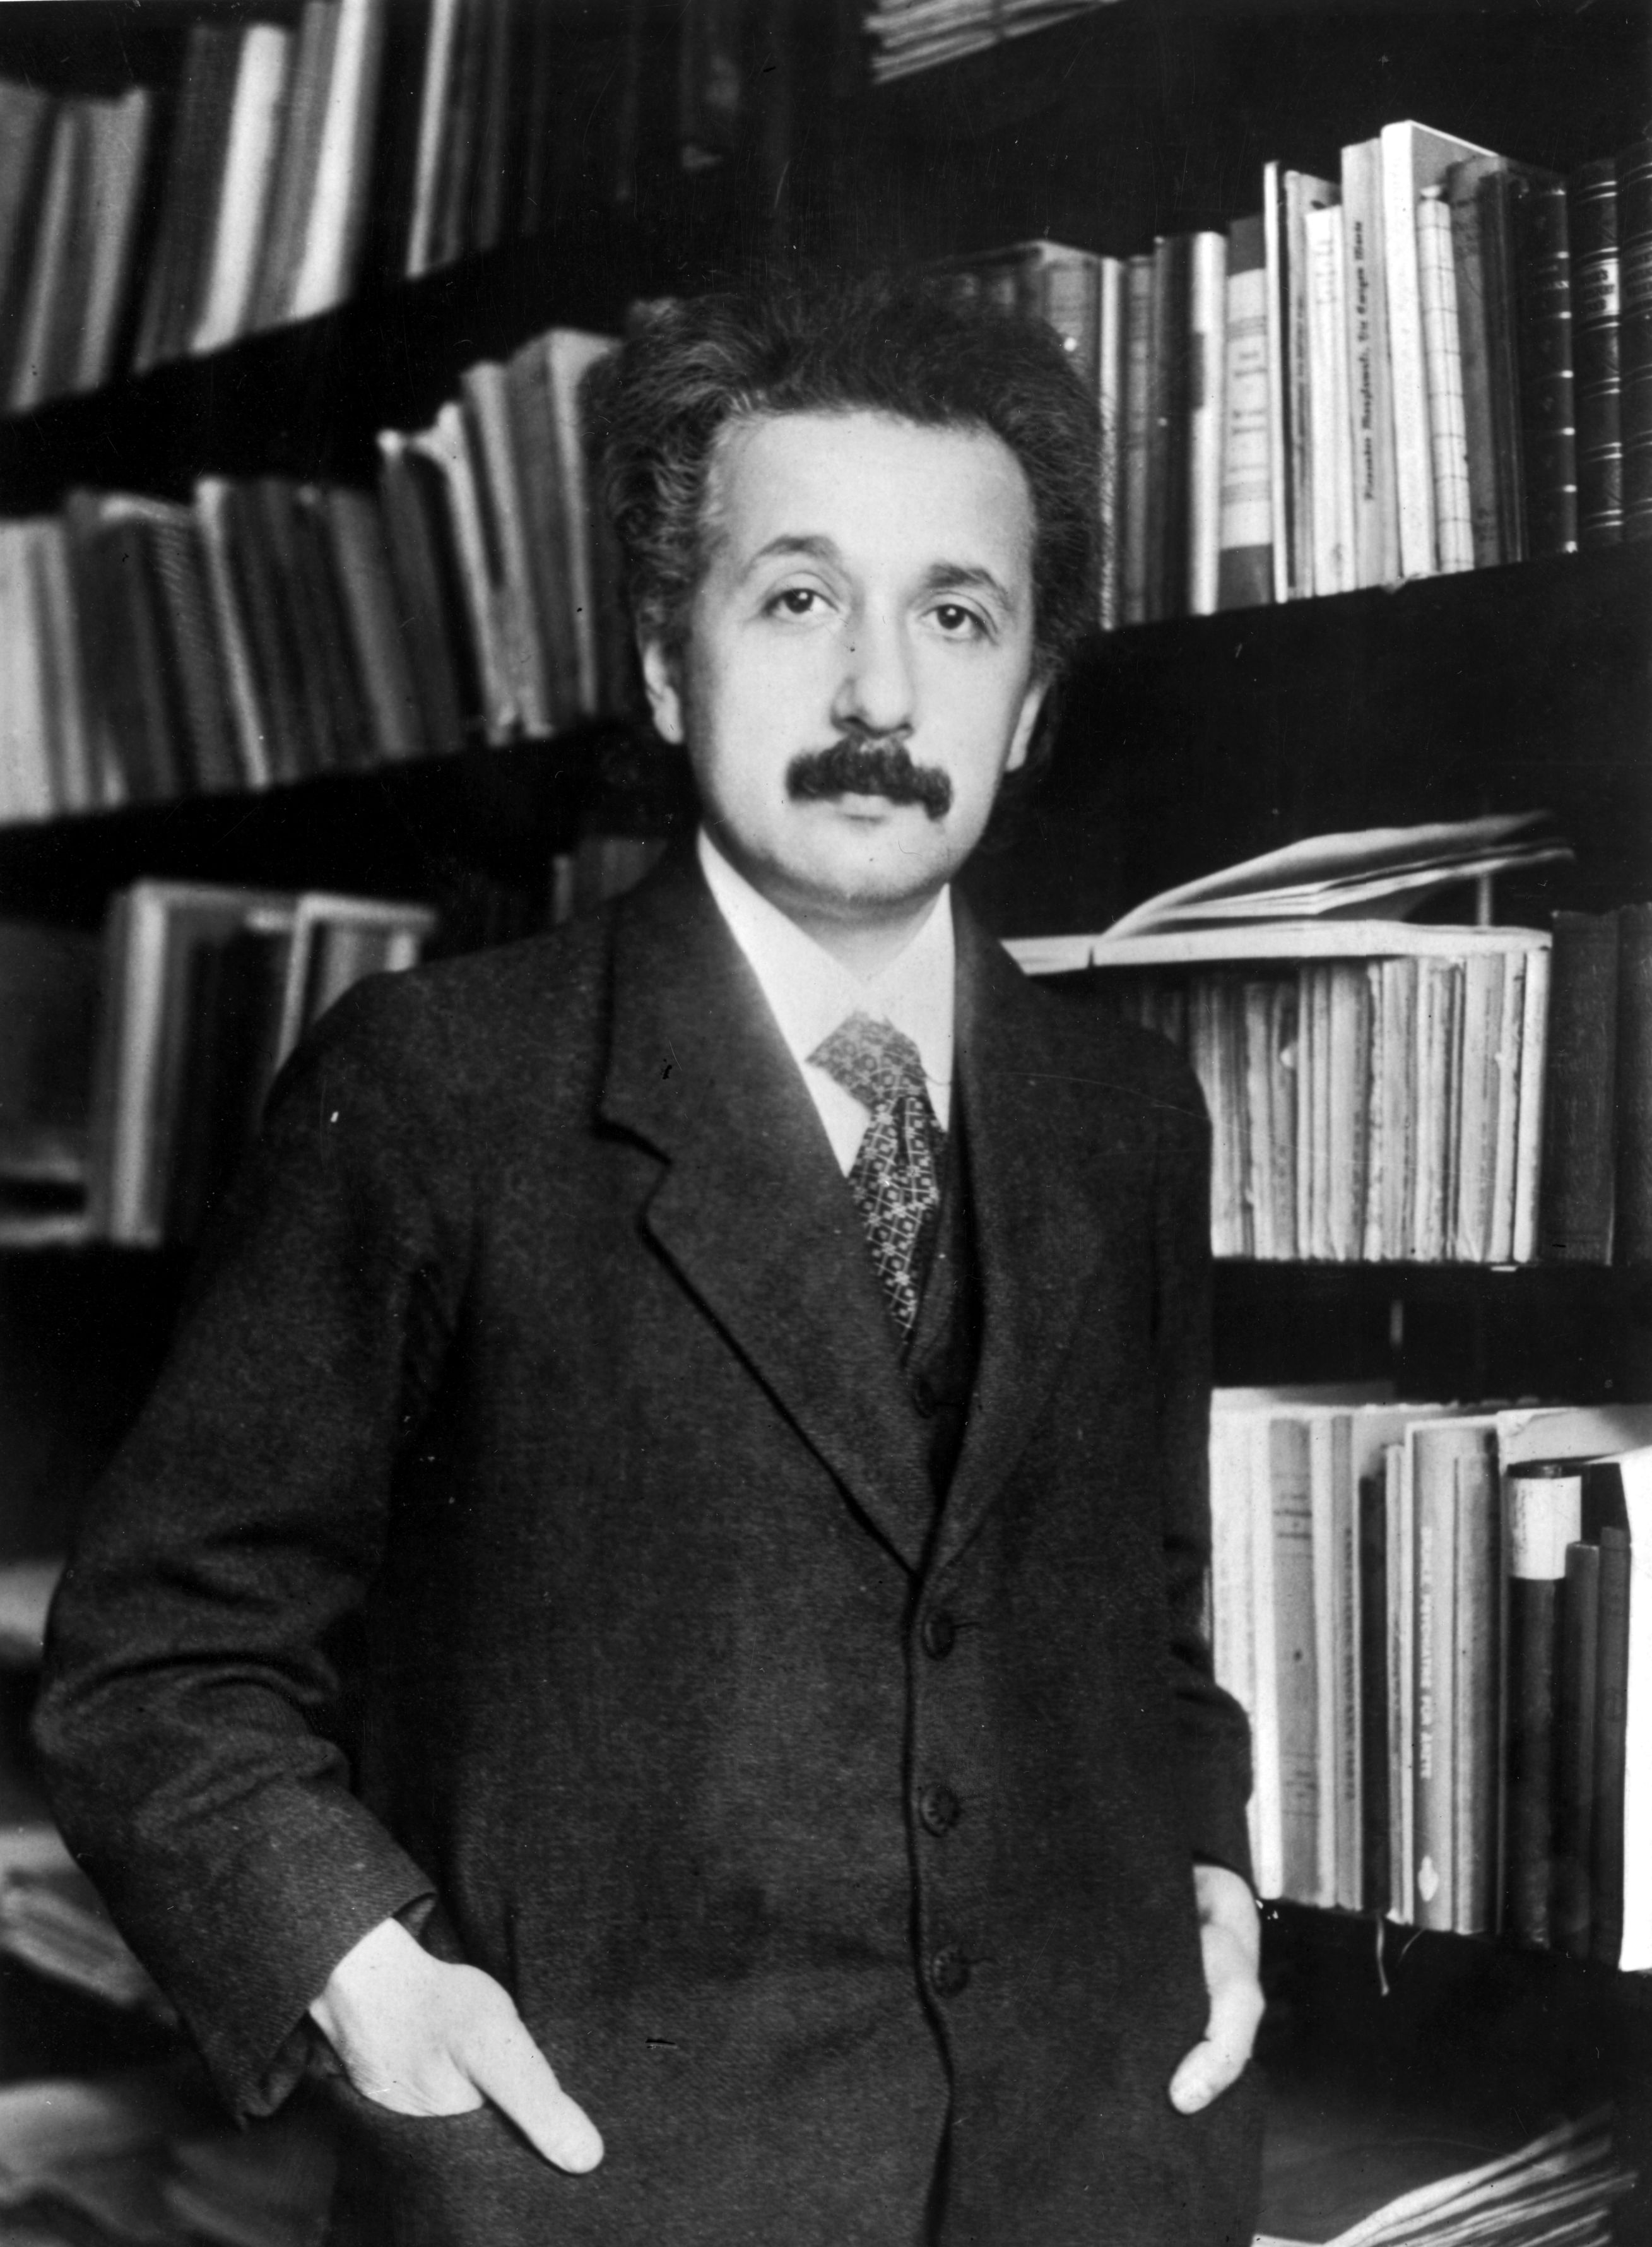 Albert Einstein in 1905, with 10 years of hard work ahead of him. (Photo by Topical Press Agency/Getty Images)